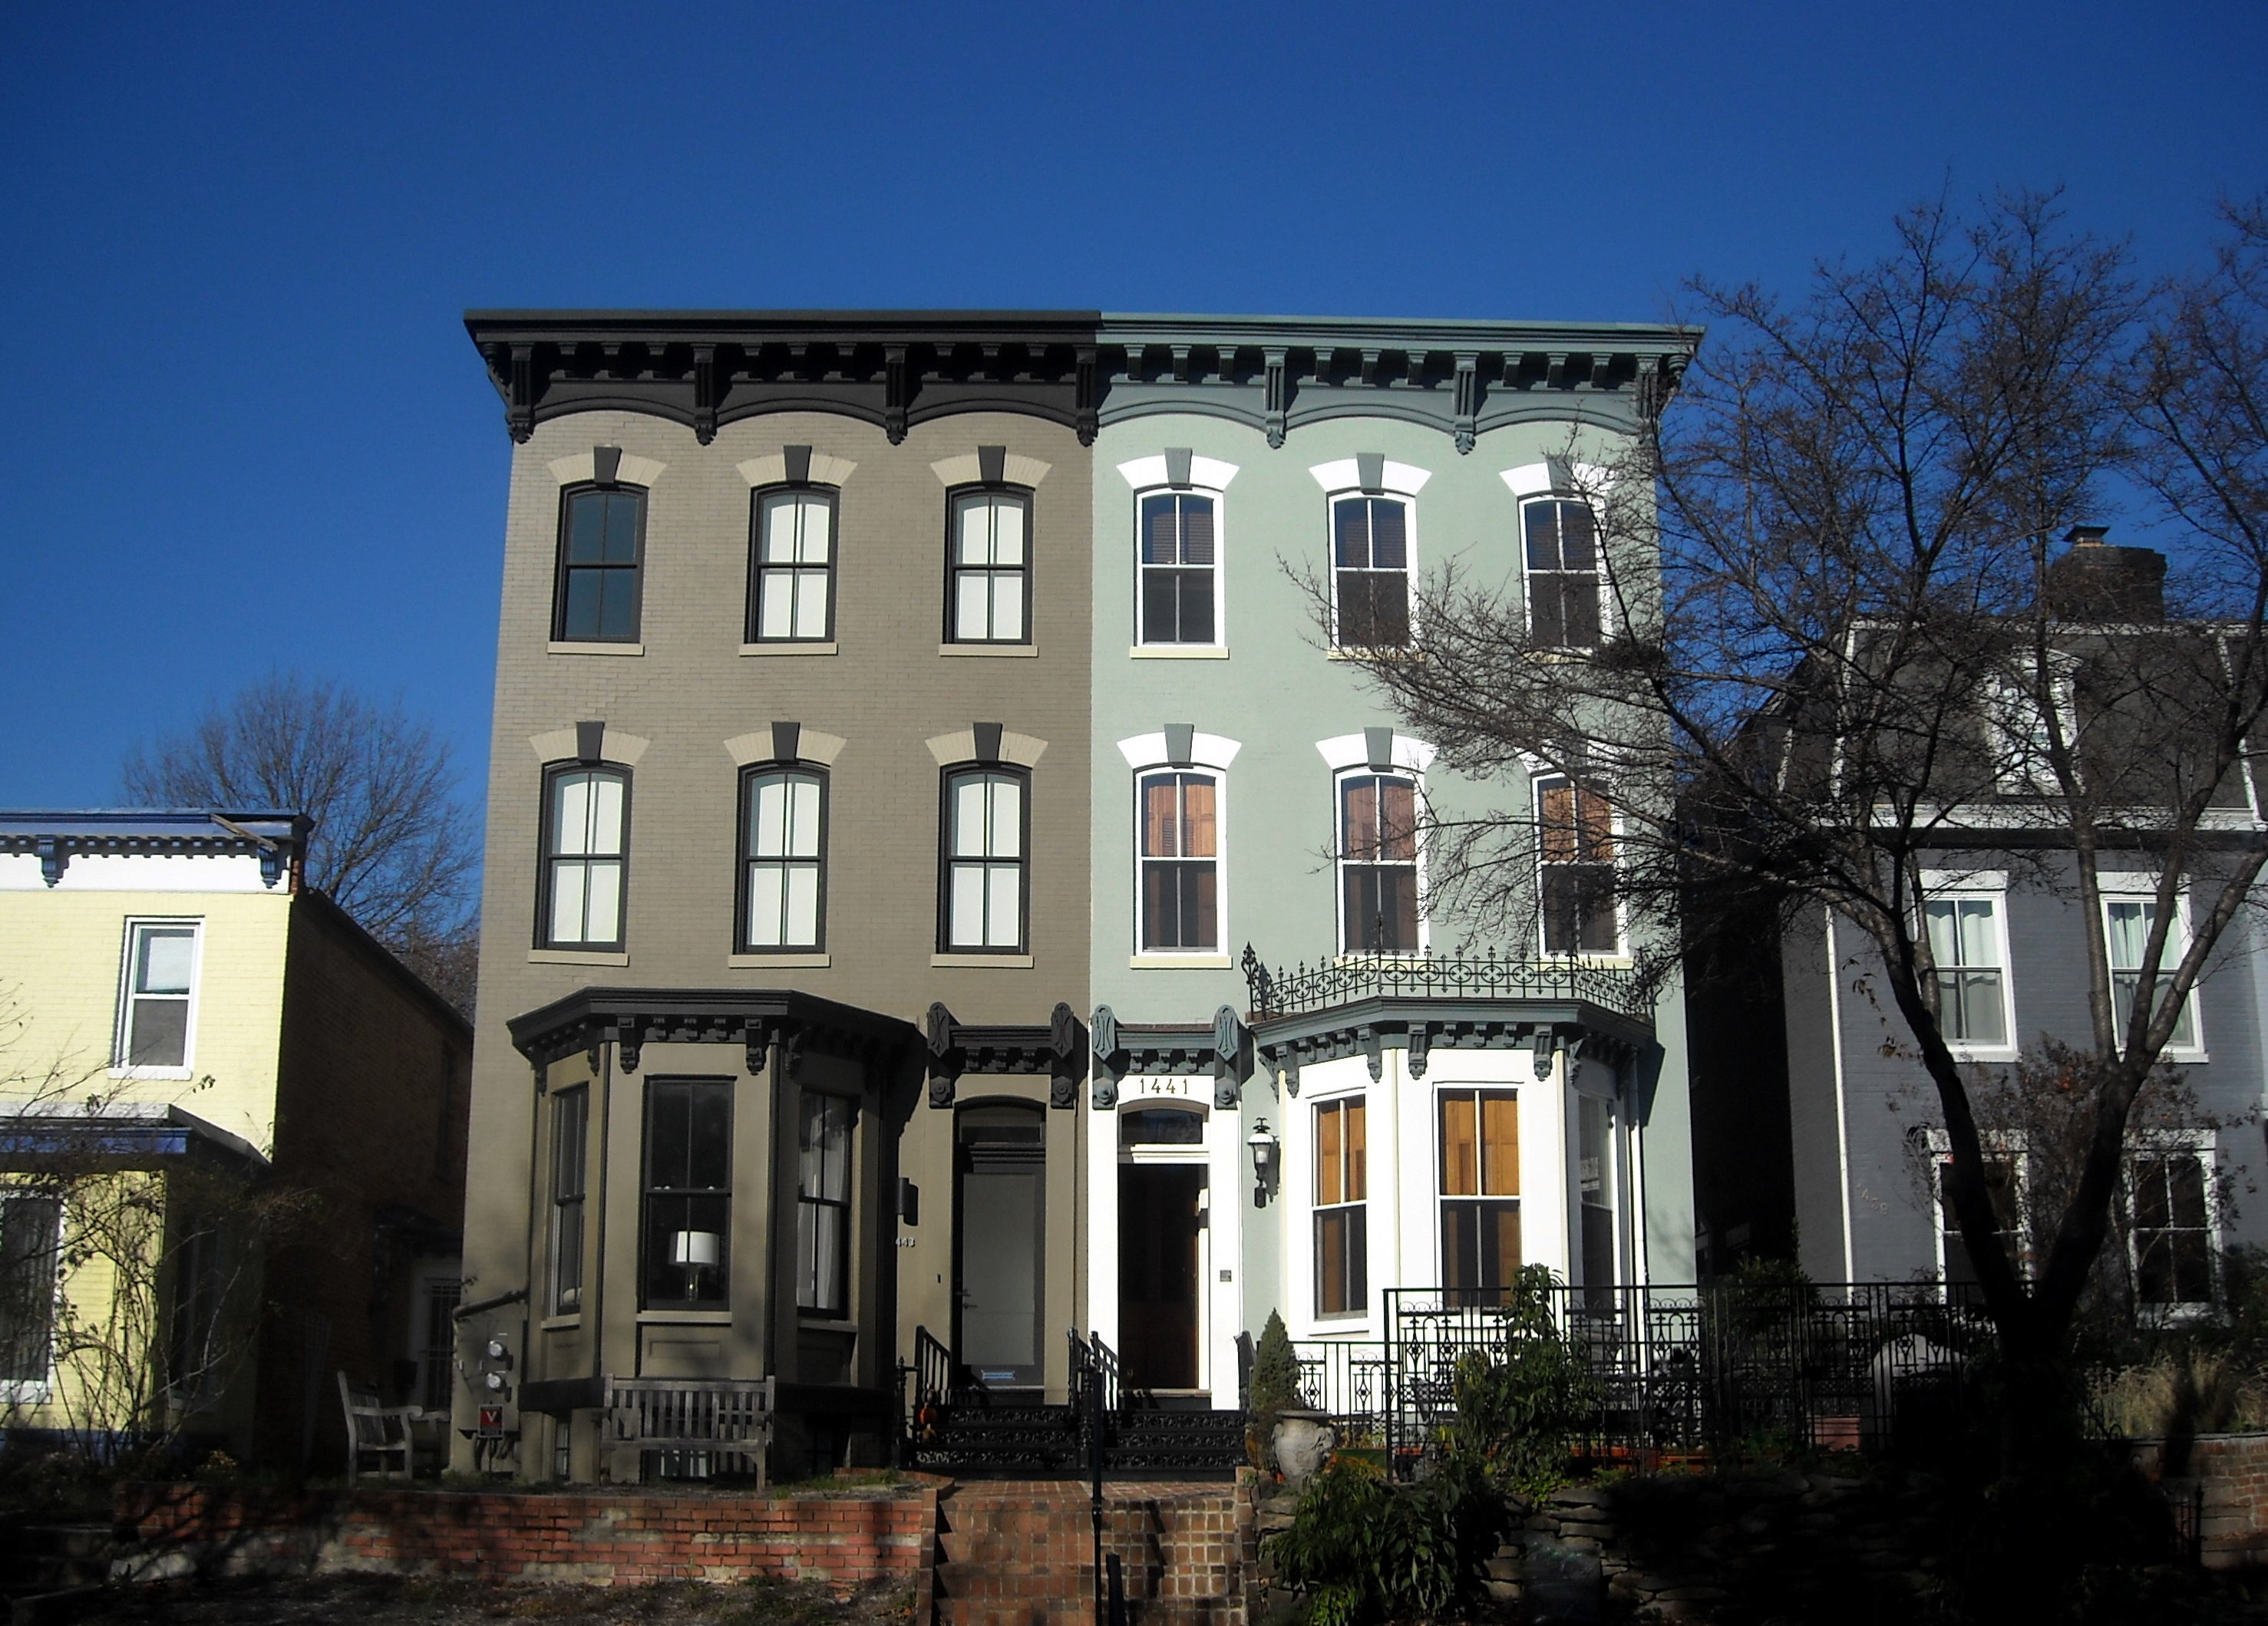 File:1441 and 1443 Q Street, NW.JPG